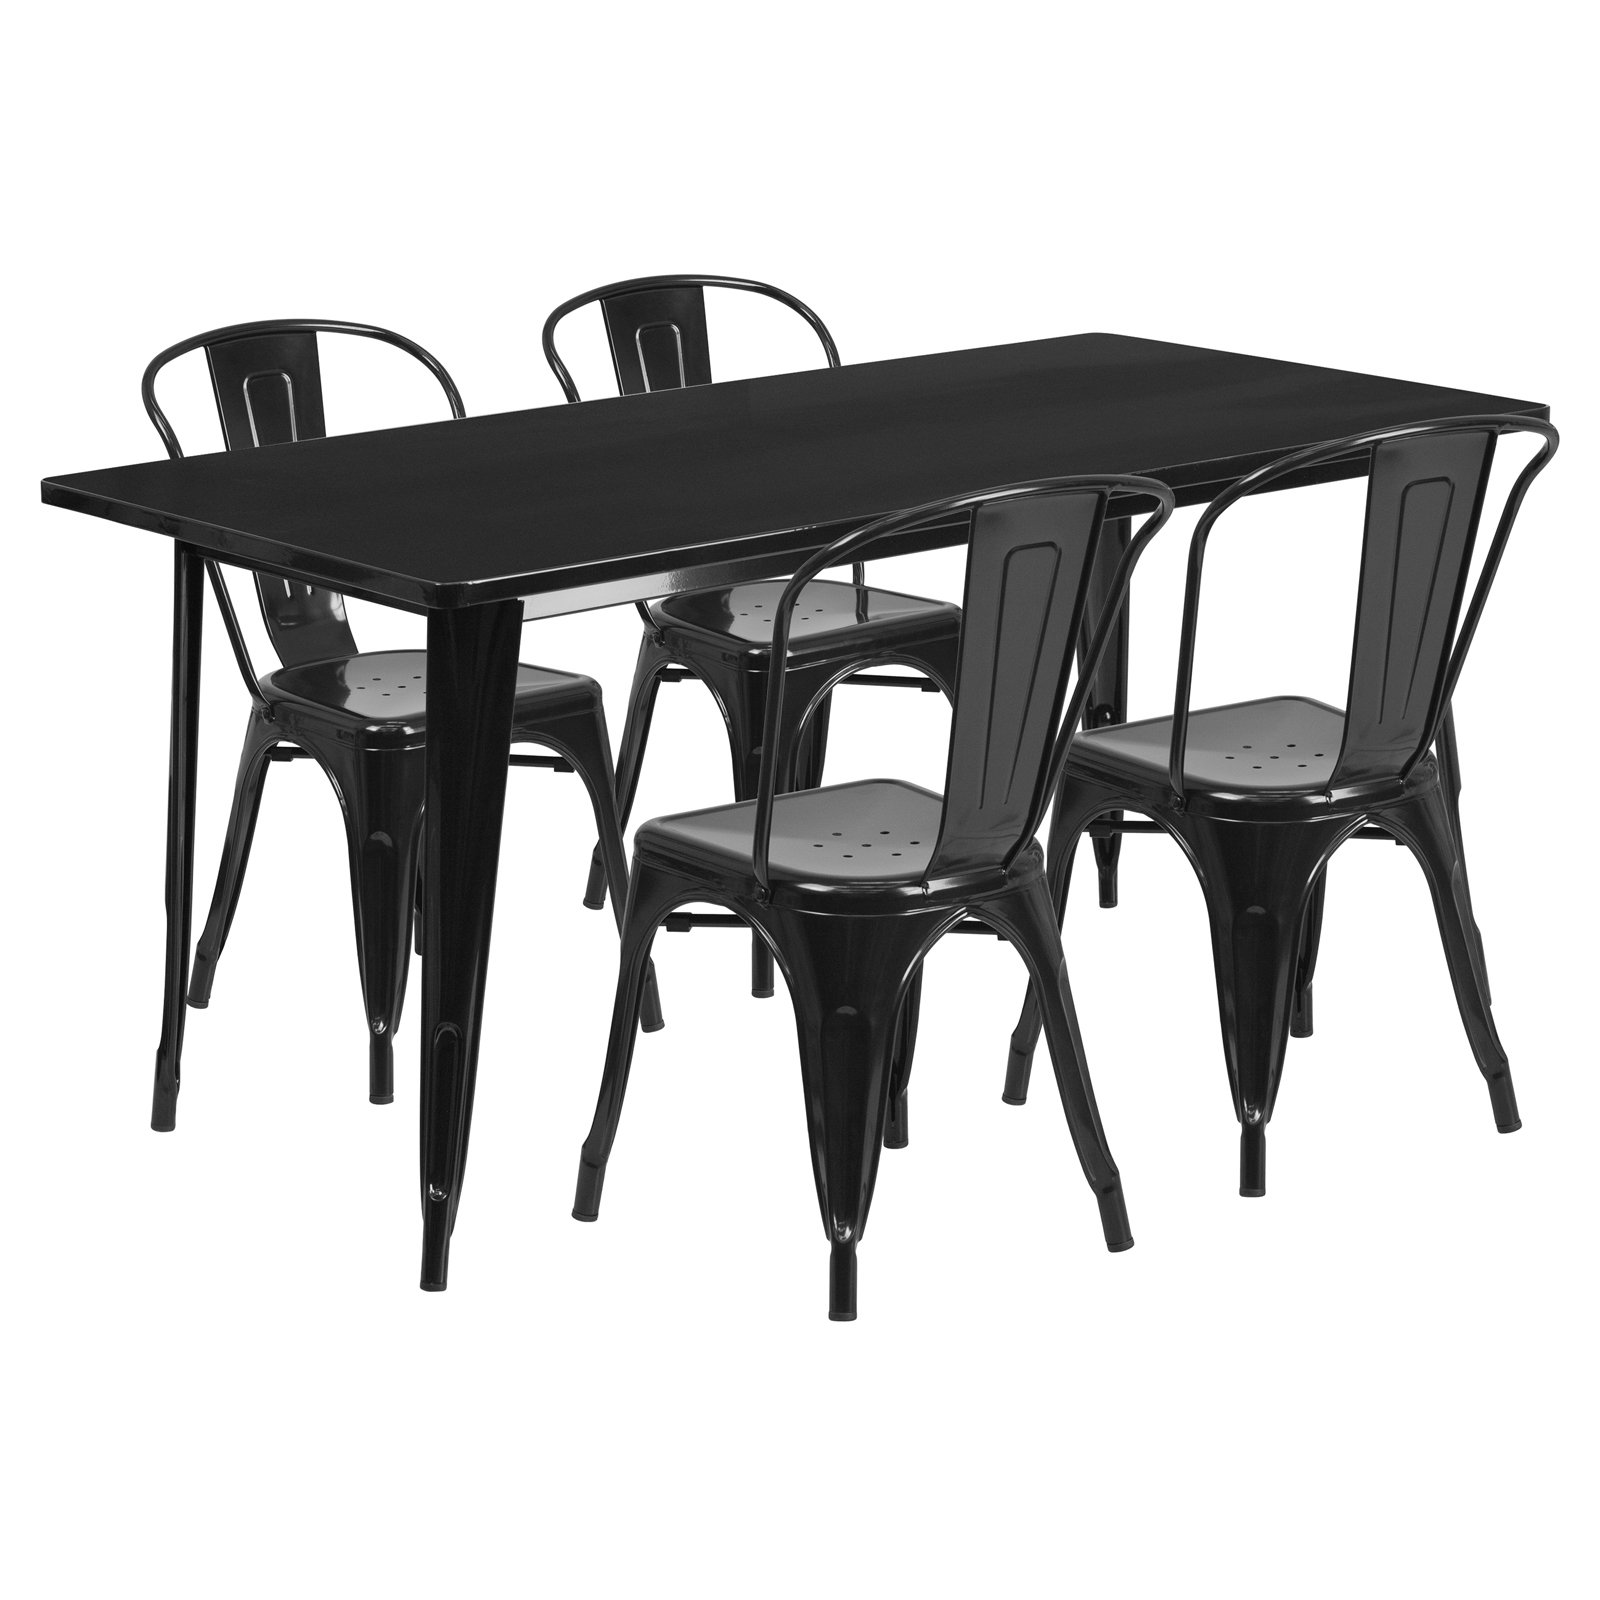 """Flash Furniture 31.5"""" x 63"""" Rectangular Metal Indoor-Outdoor Table Set with 4 Stack Chairs, Multiple Colors"""